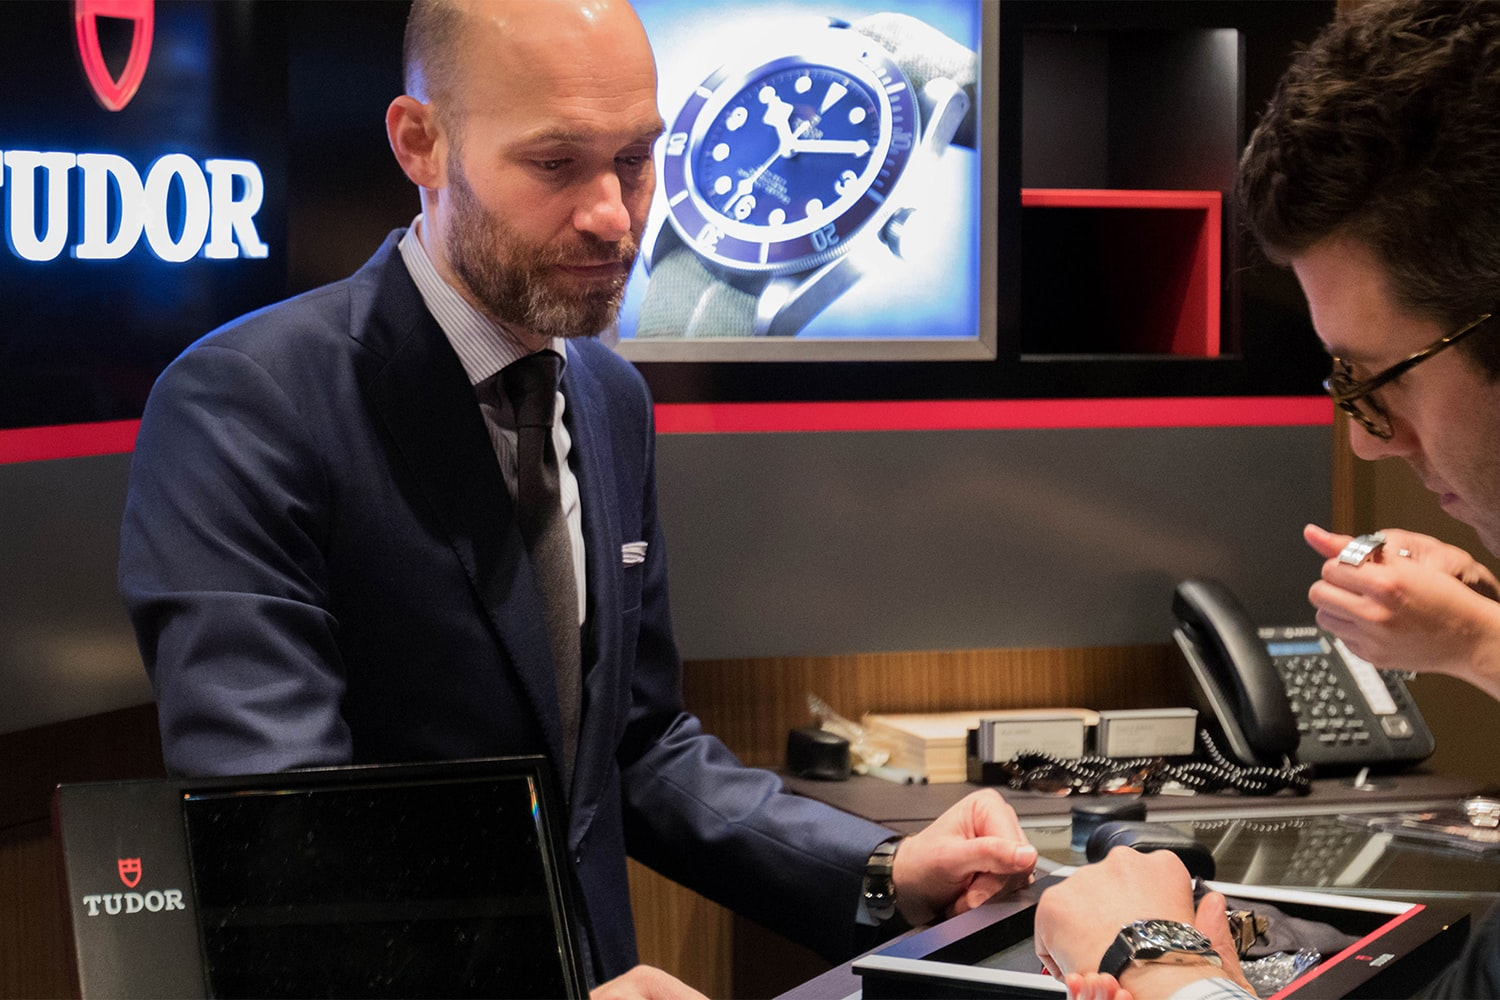 Photo Report: The Tudor Baselworld Novelties At Swiss Fine Timing In Chicago Photo Report: The Tudor Baselworld Novelties At Swiss Fine Timing In Chicago  InteractingwithWatches People only 19 copy